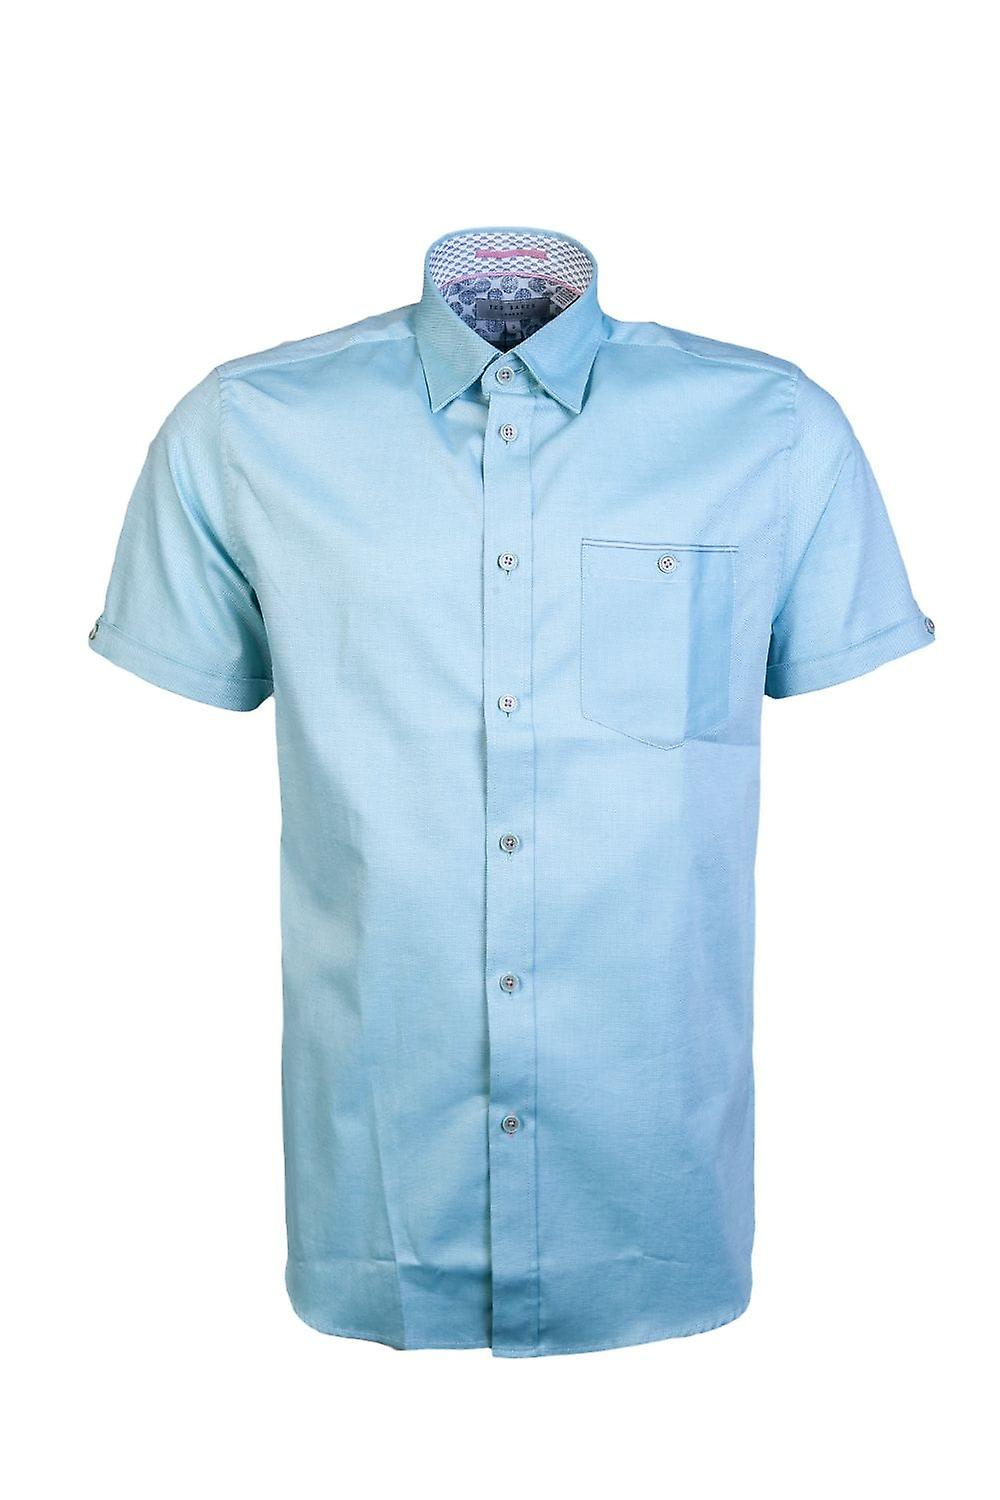 Ted Baker Business-Regular Collar Shirt MMA-WALLABI-TH9M